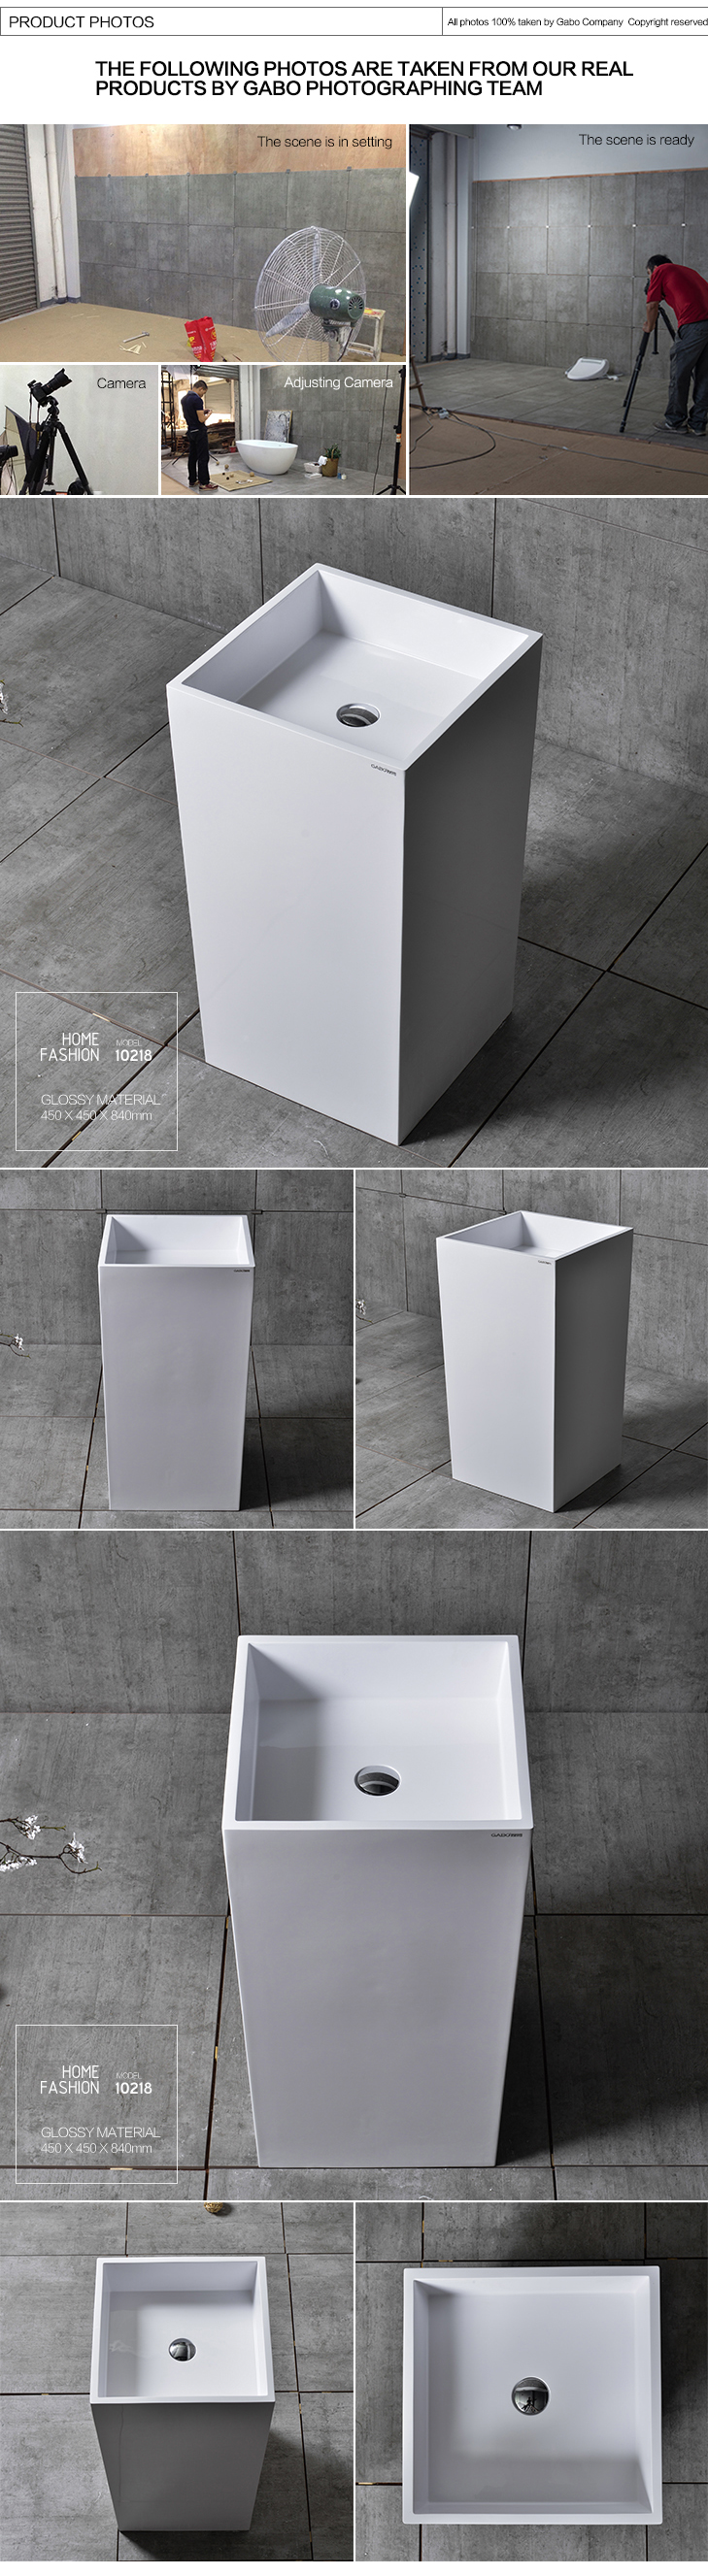 Luxury Sanitary Wares Wash Basins And Sinks